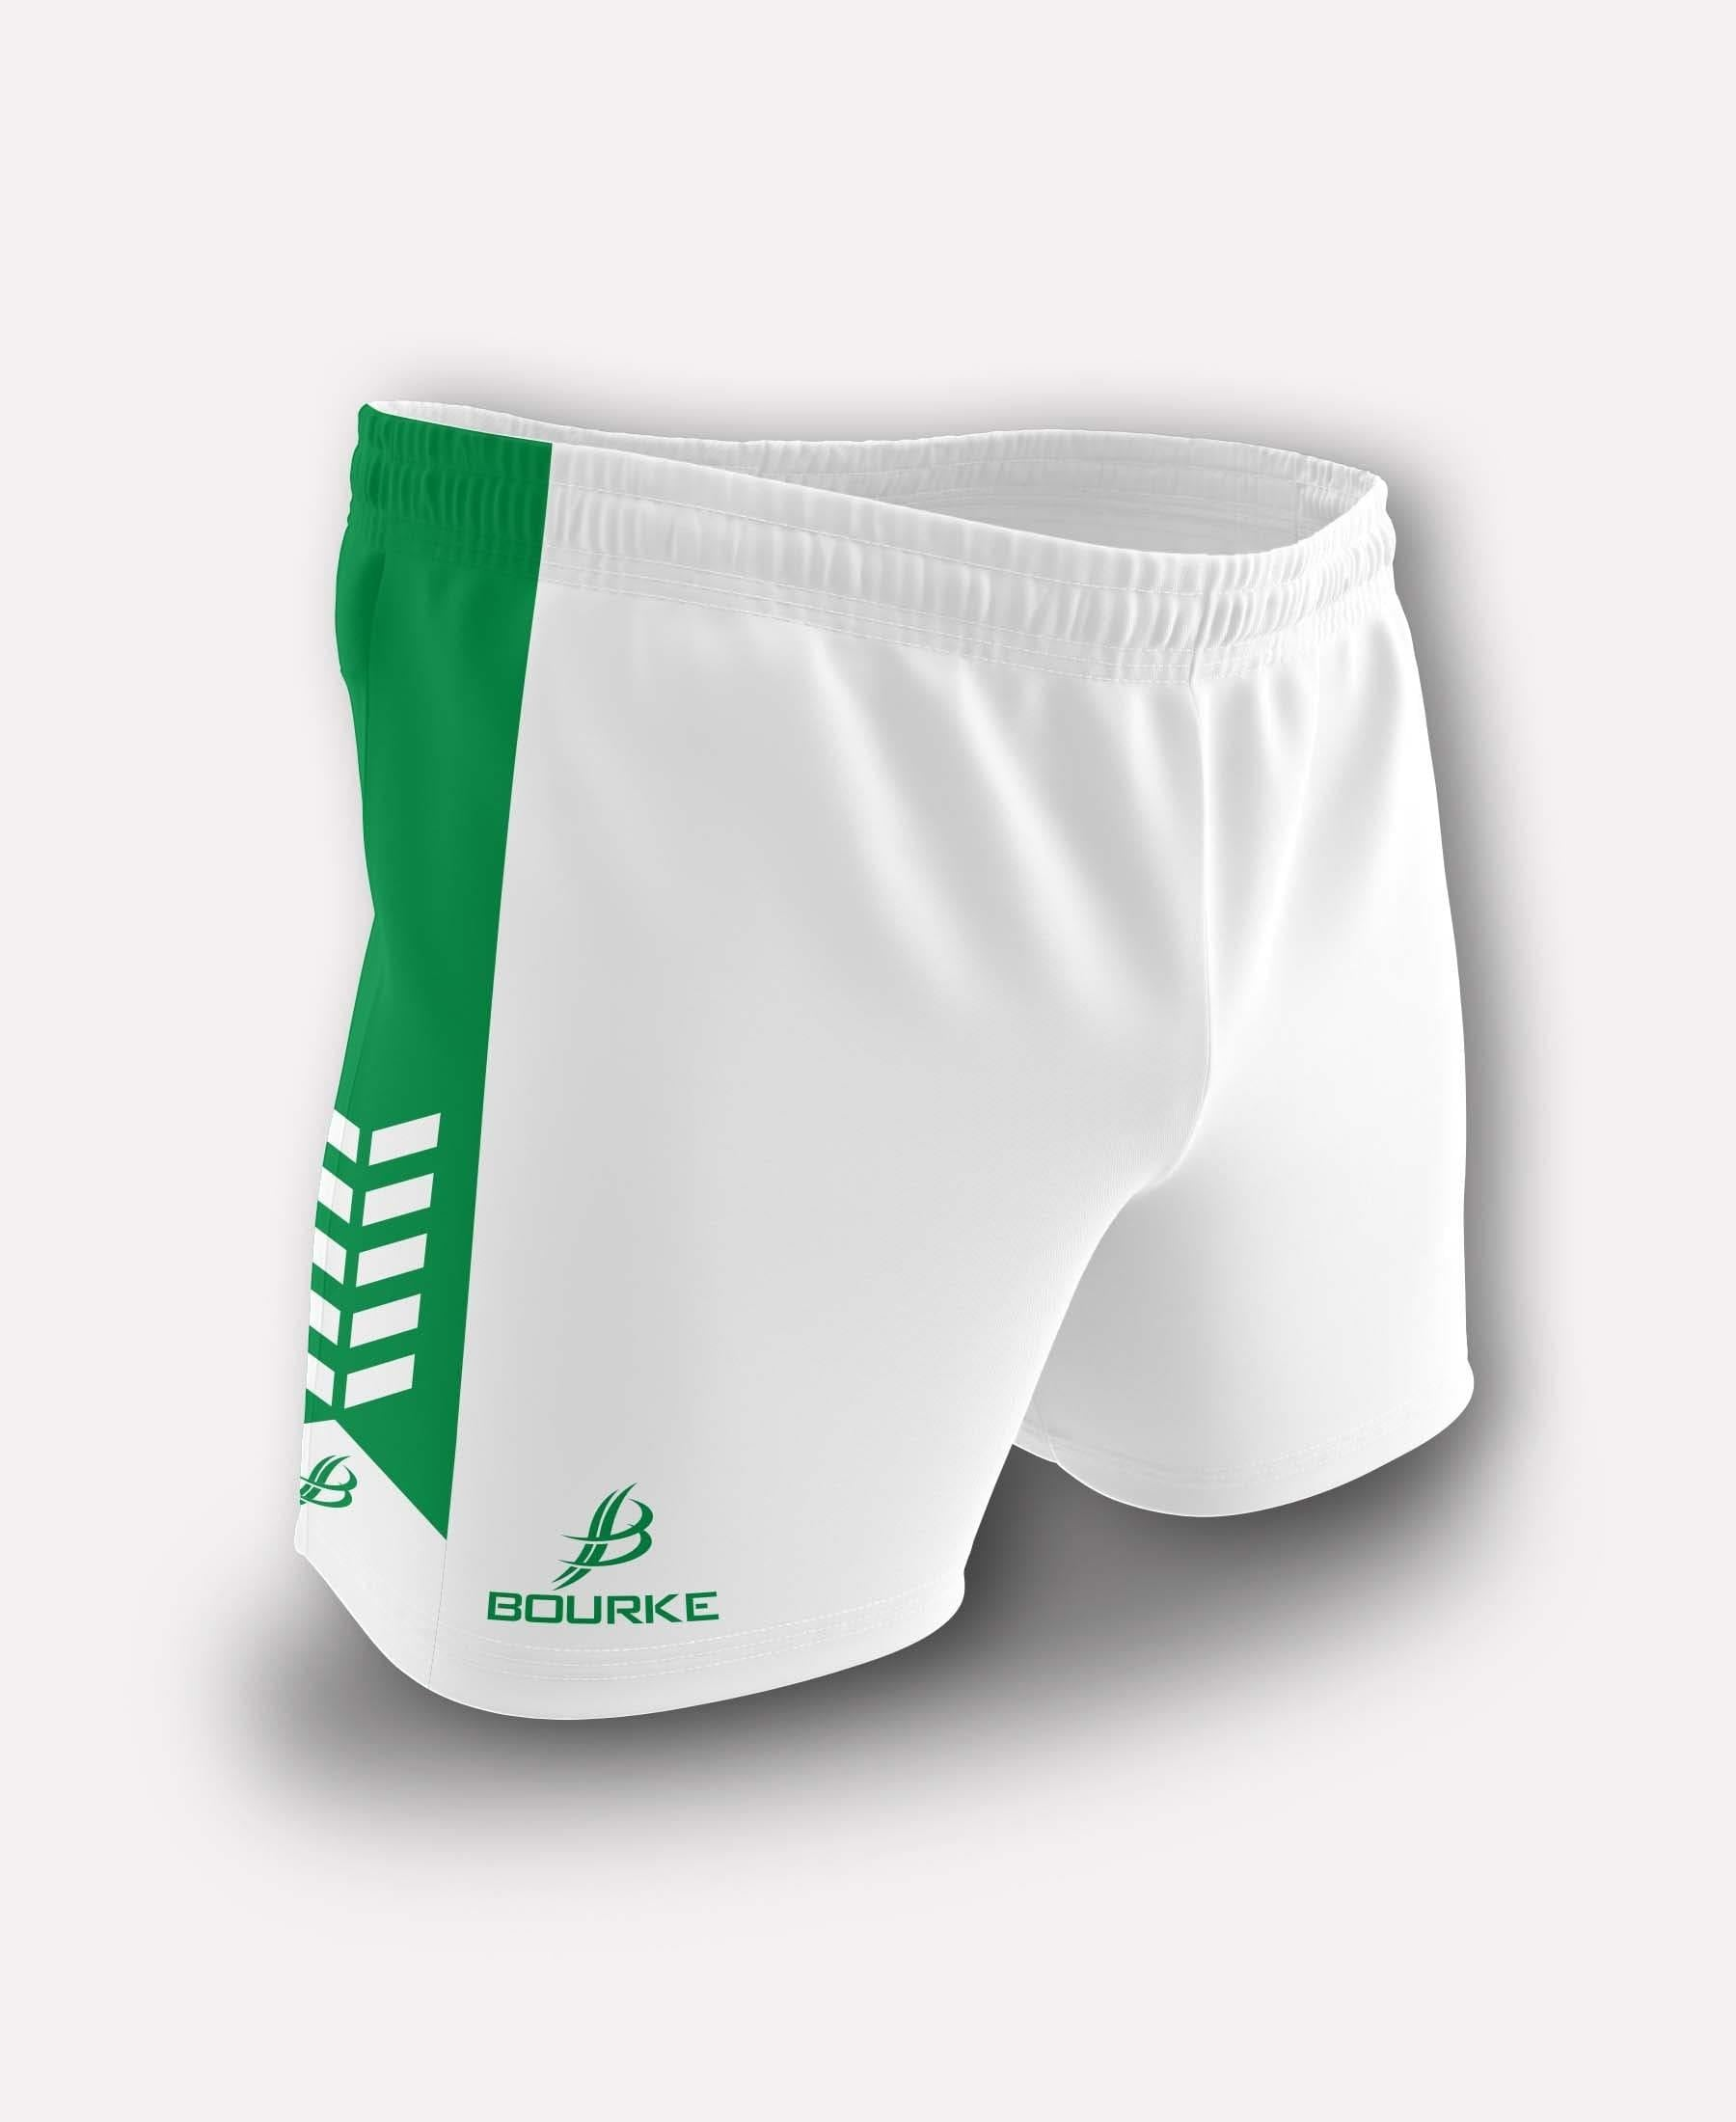 Chevron Kids Shorts (White/Green) - Bourke Sports Limited